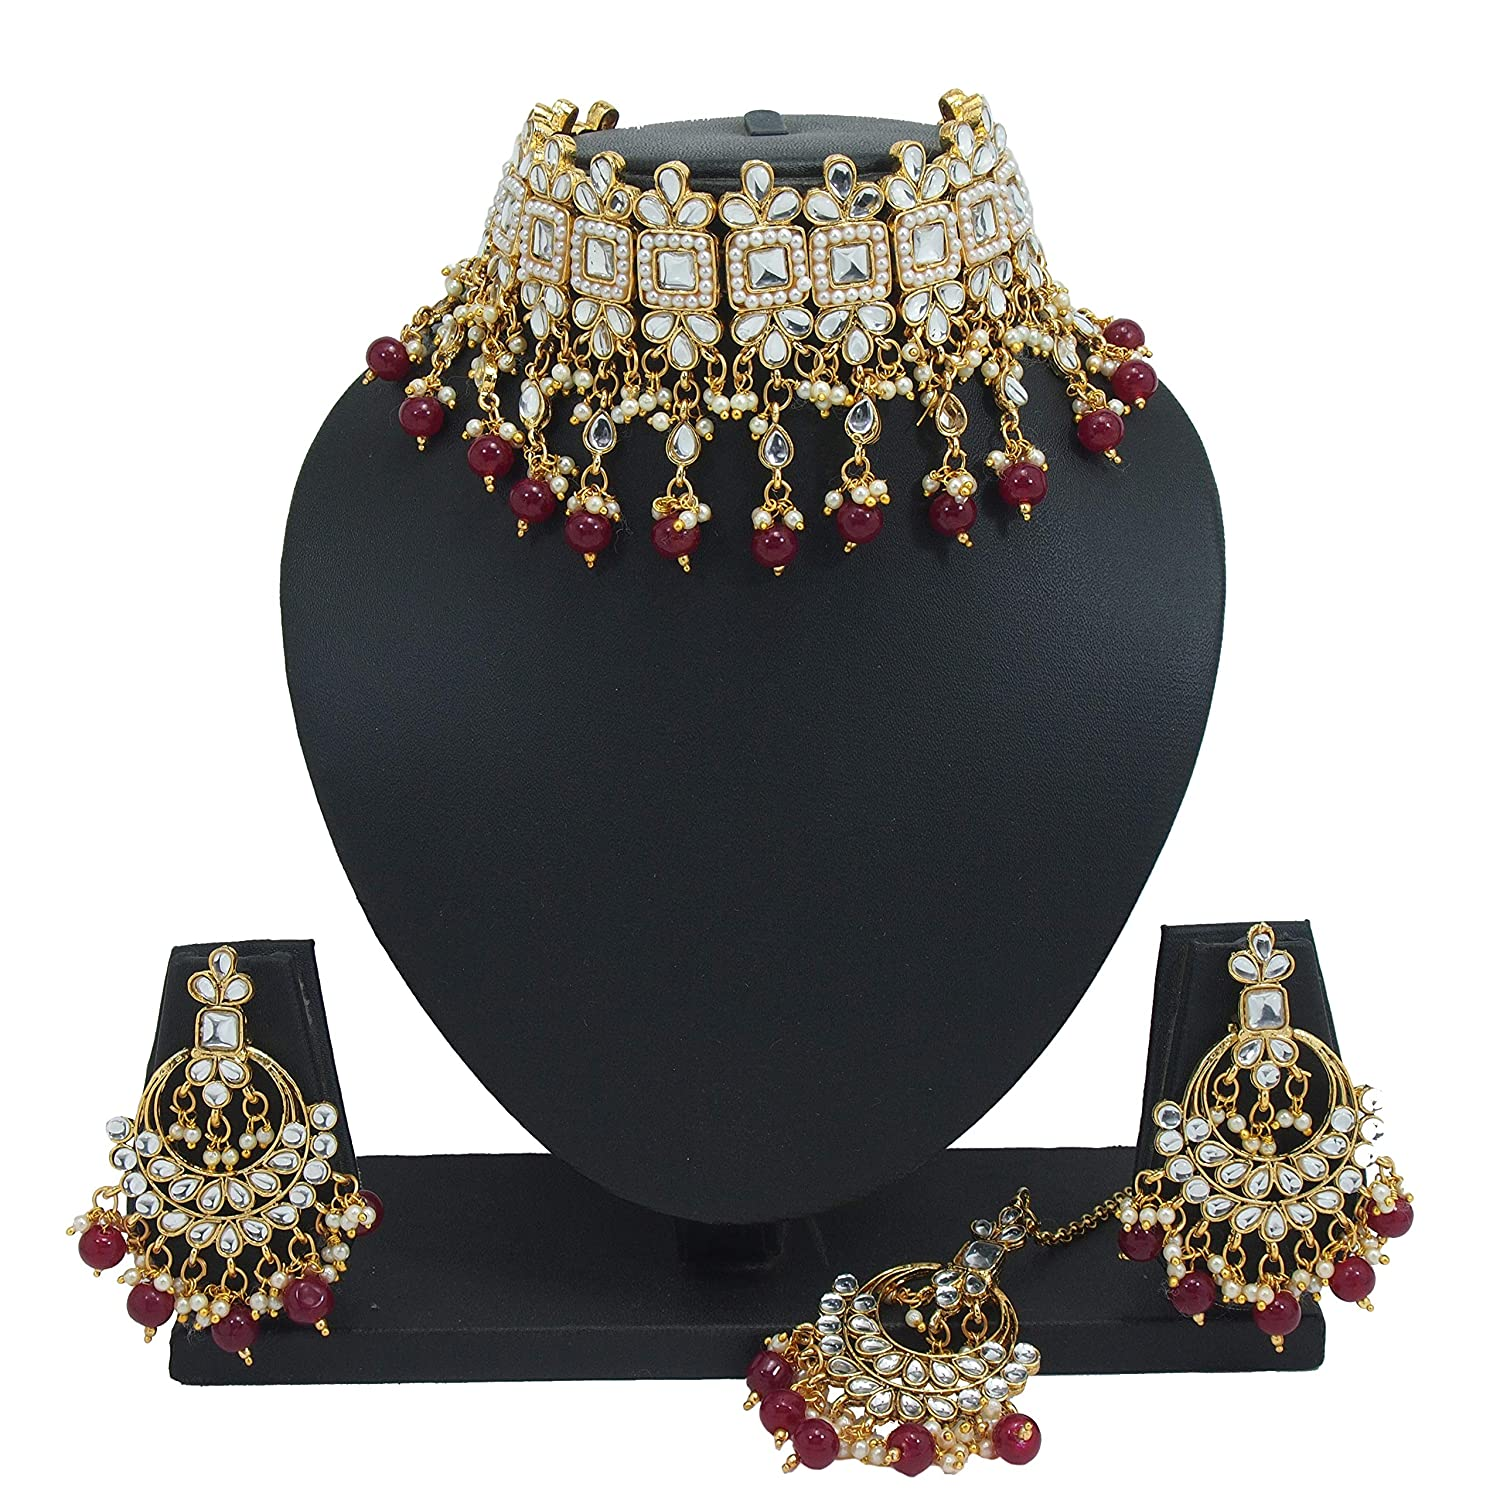 805f6d003 Buy PADMAWATI BANGLES Maroon Beads Pearl Kundan Choker Necklace Dangler  Earrings and Mang Tikka Jewelry Set for Women Online at Low Prices in India  | Amazon ...